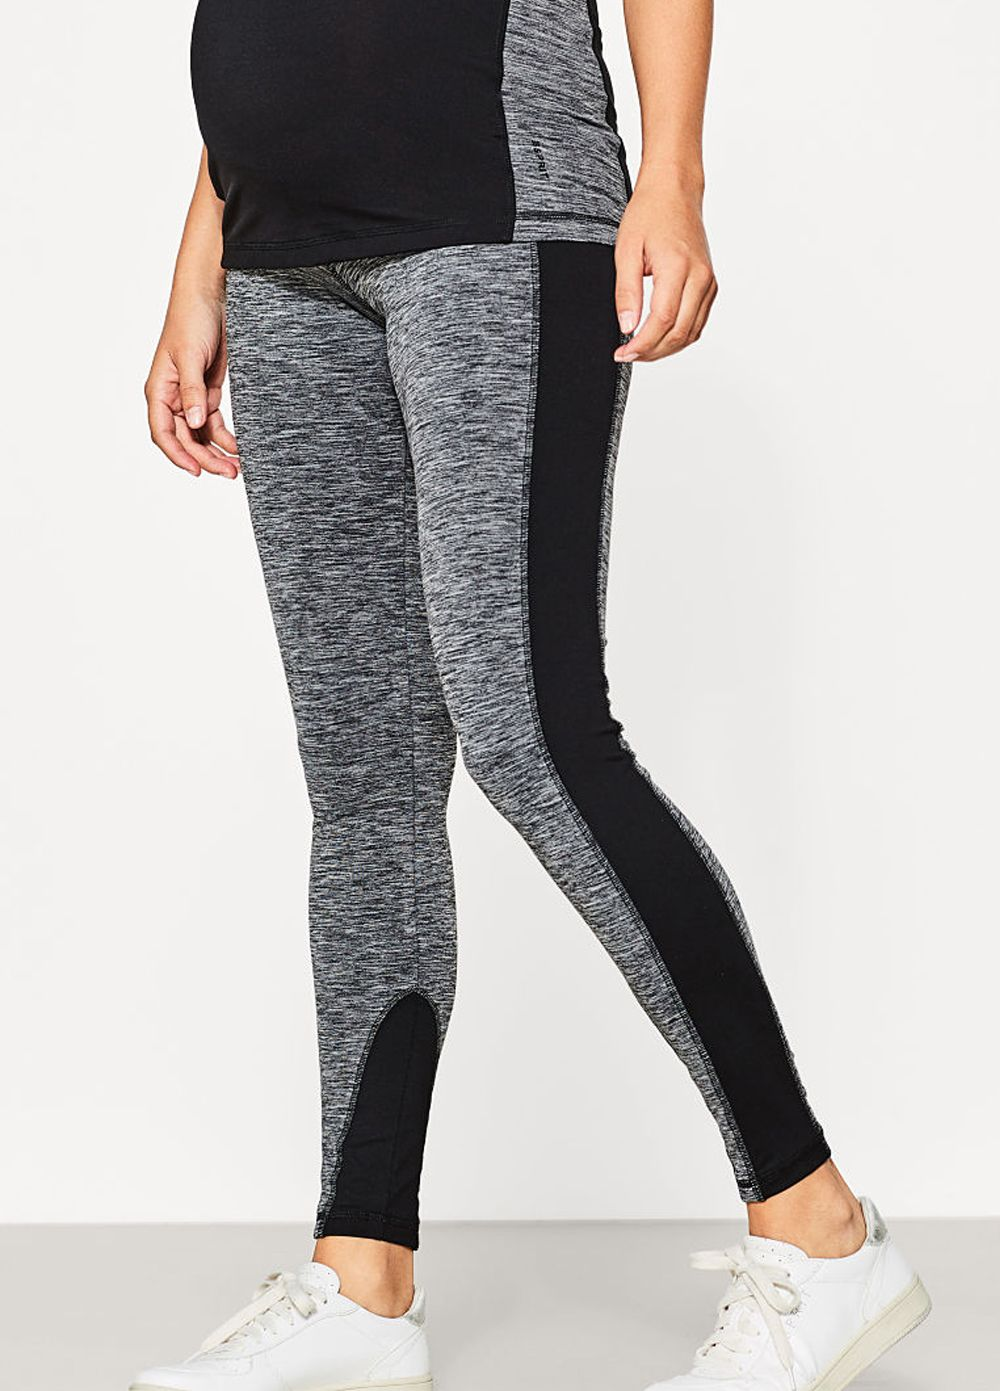 7ee8d9a0ffc05 Queen Bee Jacoba Black Maternity Yoga Pants by Trimester Clothing | BÉBÉ &  MAMAN | Maternity Pants, Pants, Yoga Pants